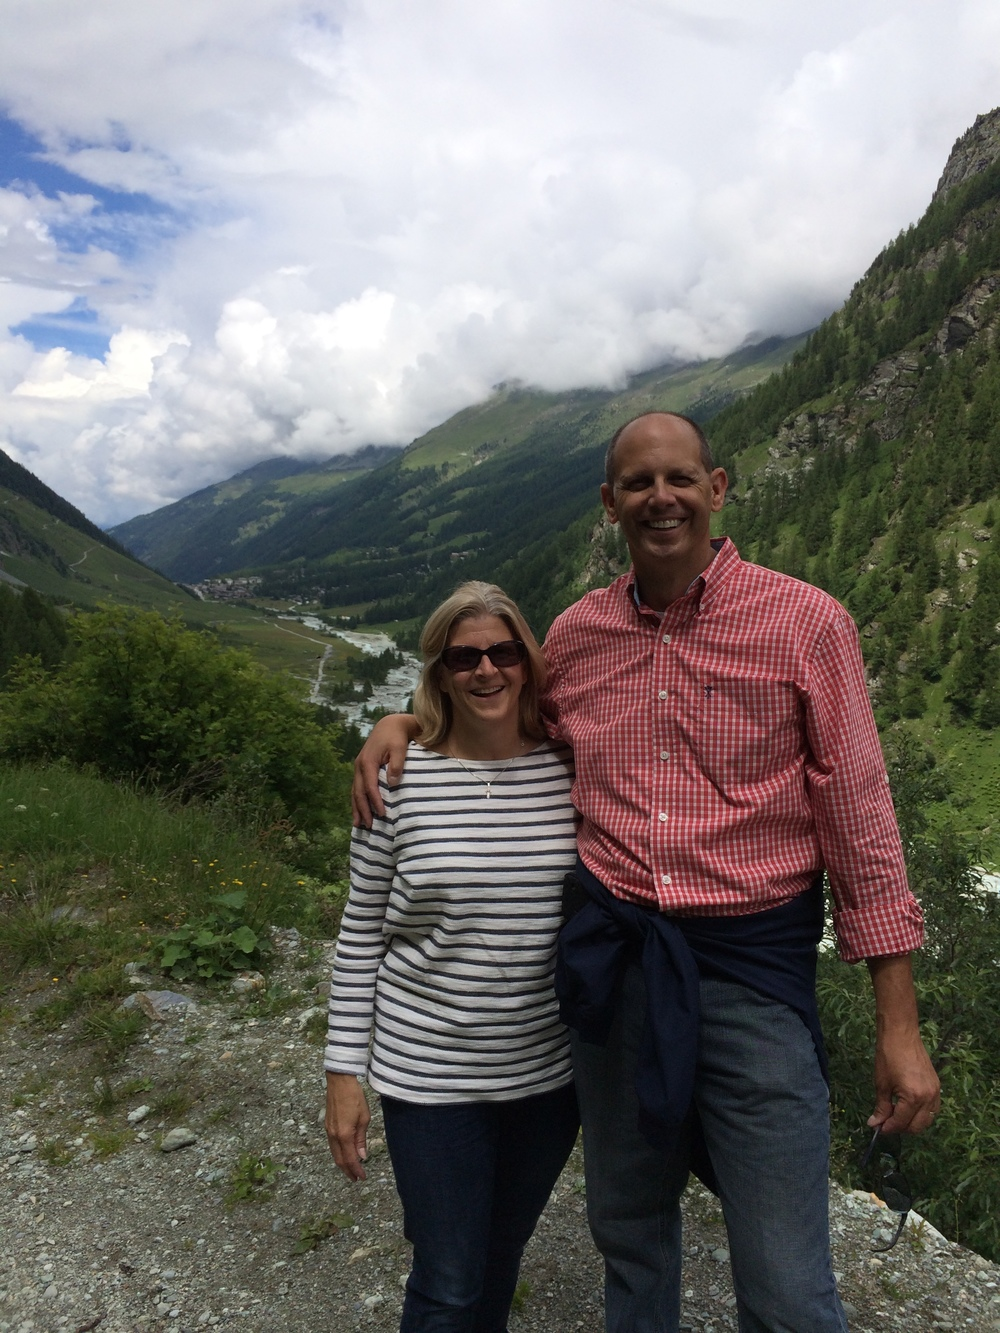 Steve Morrissette in the Alps